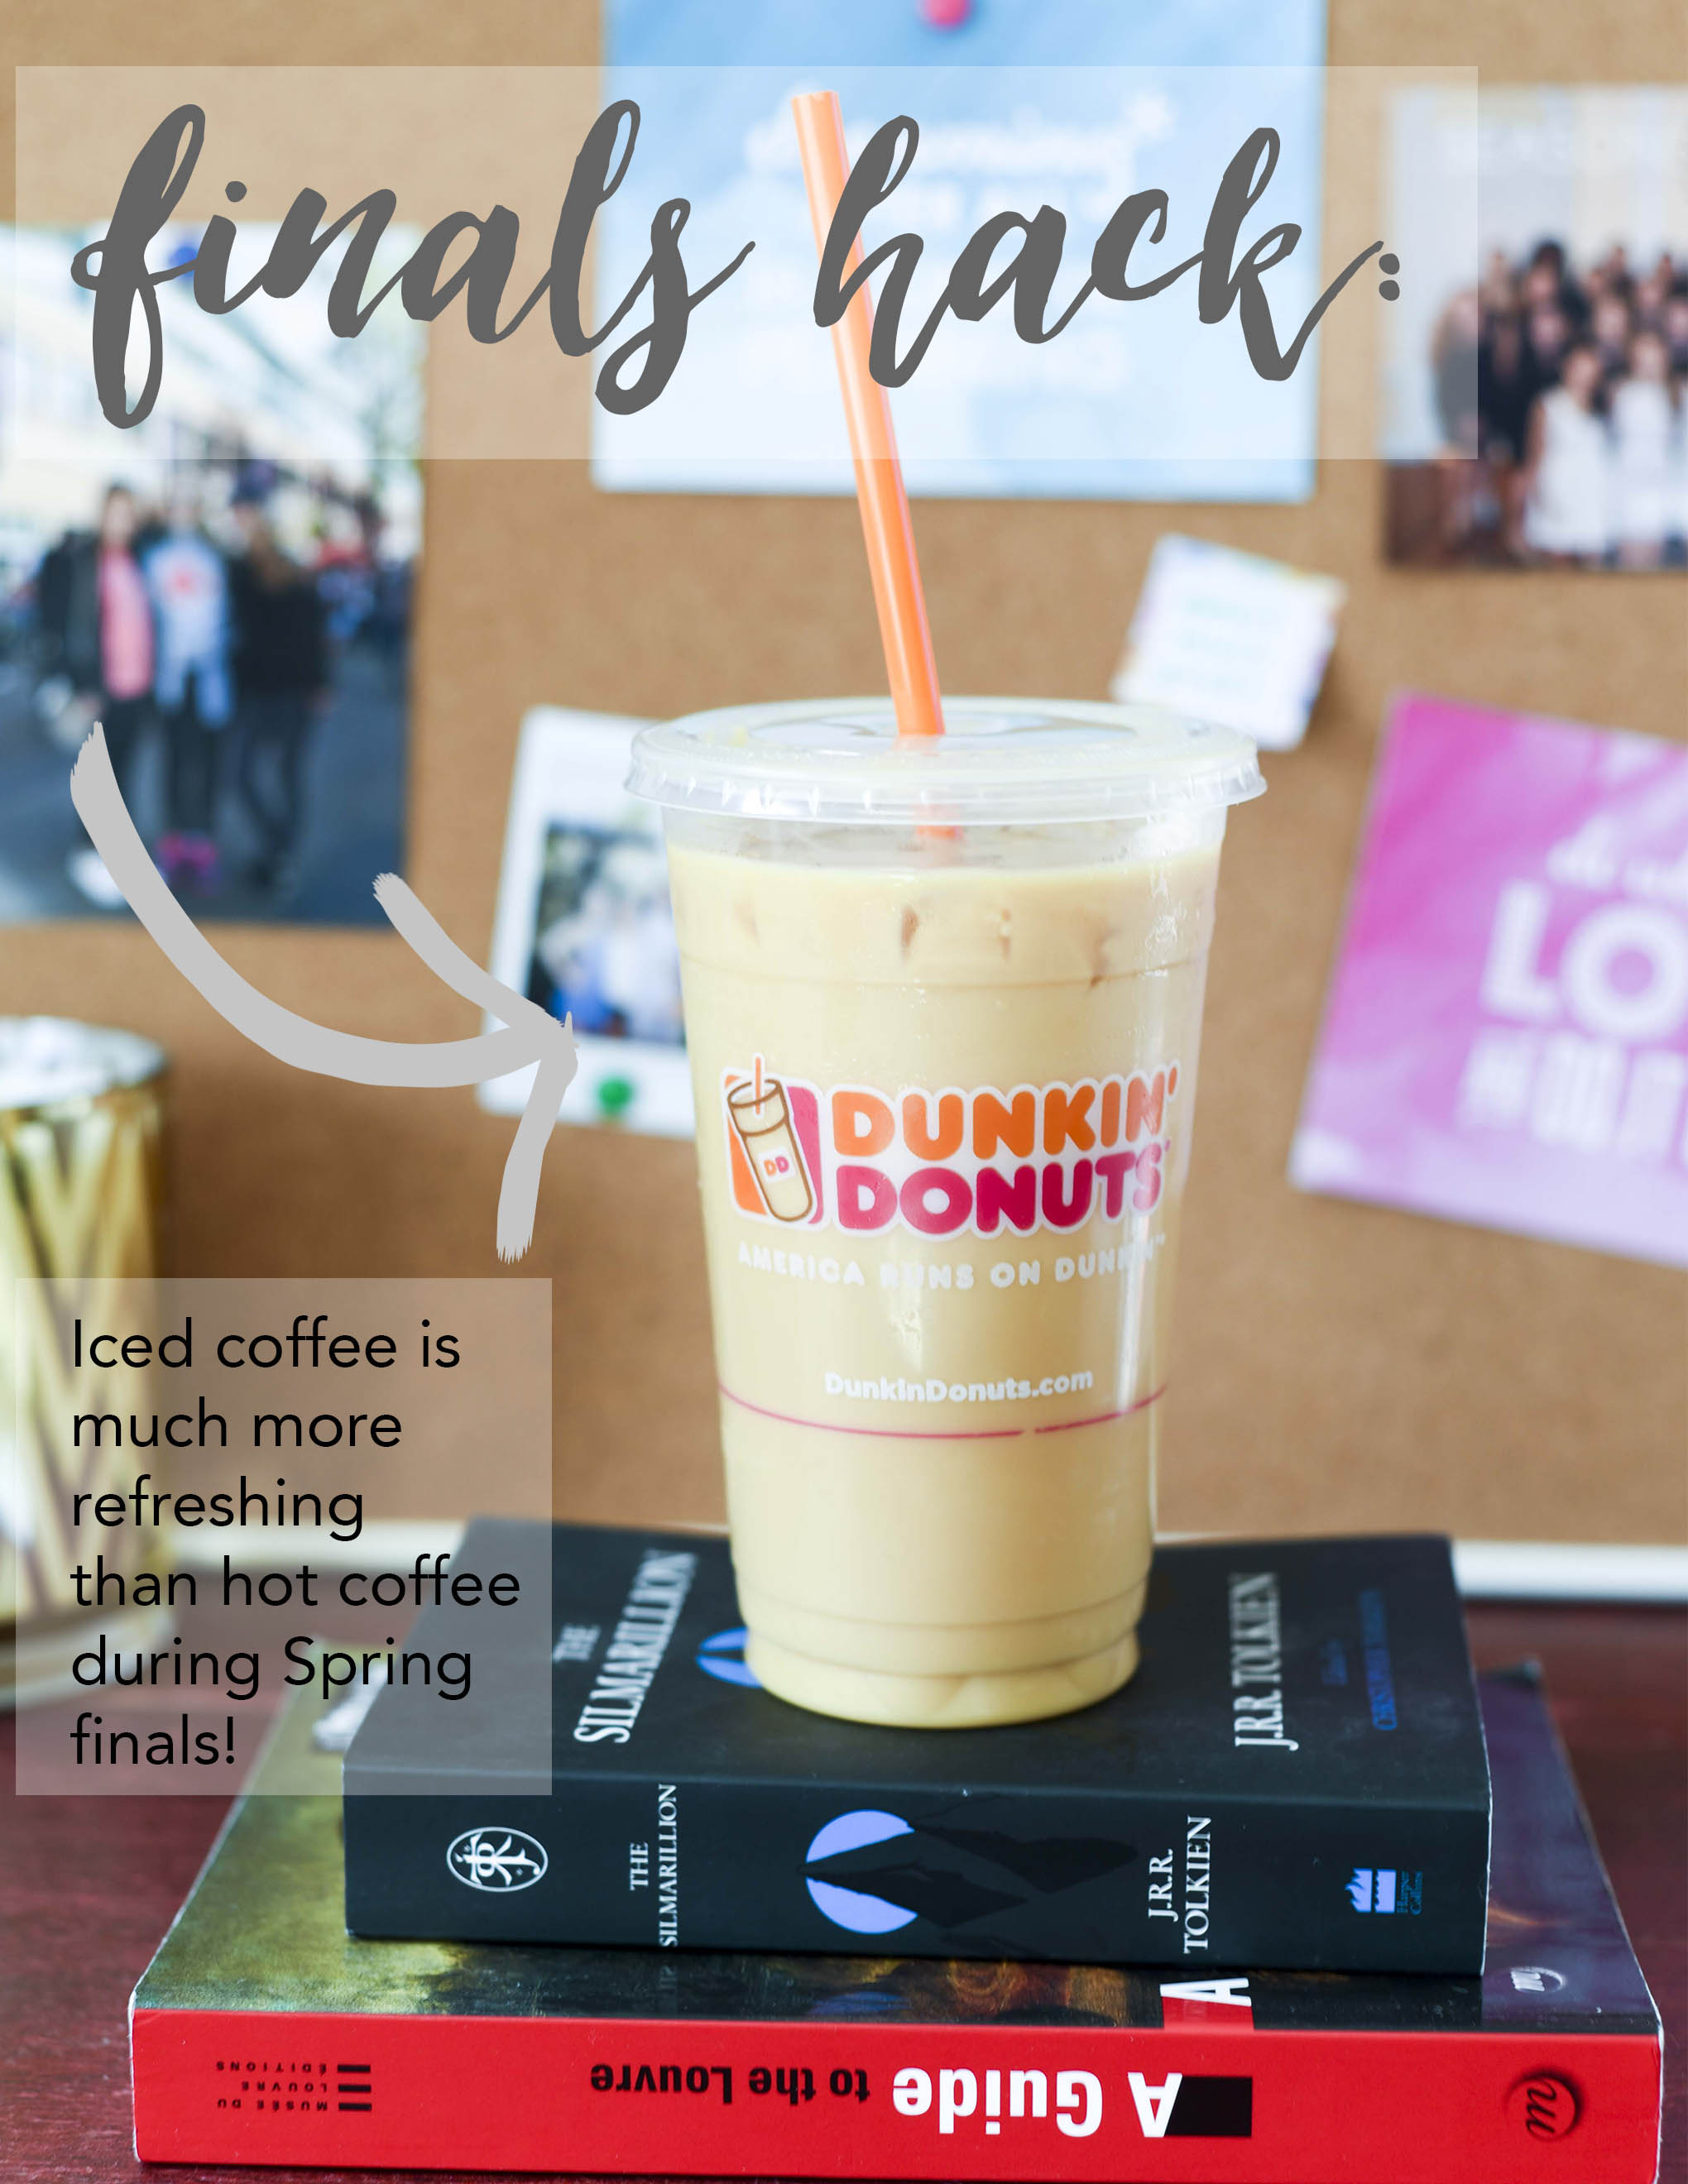 @DunkinDonuts #icedcoffee is the perfect addition to your final study plans! Final exams run on #dunkindonuts #sponsored